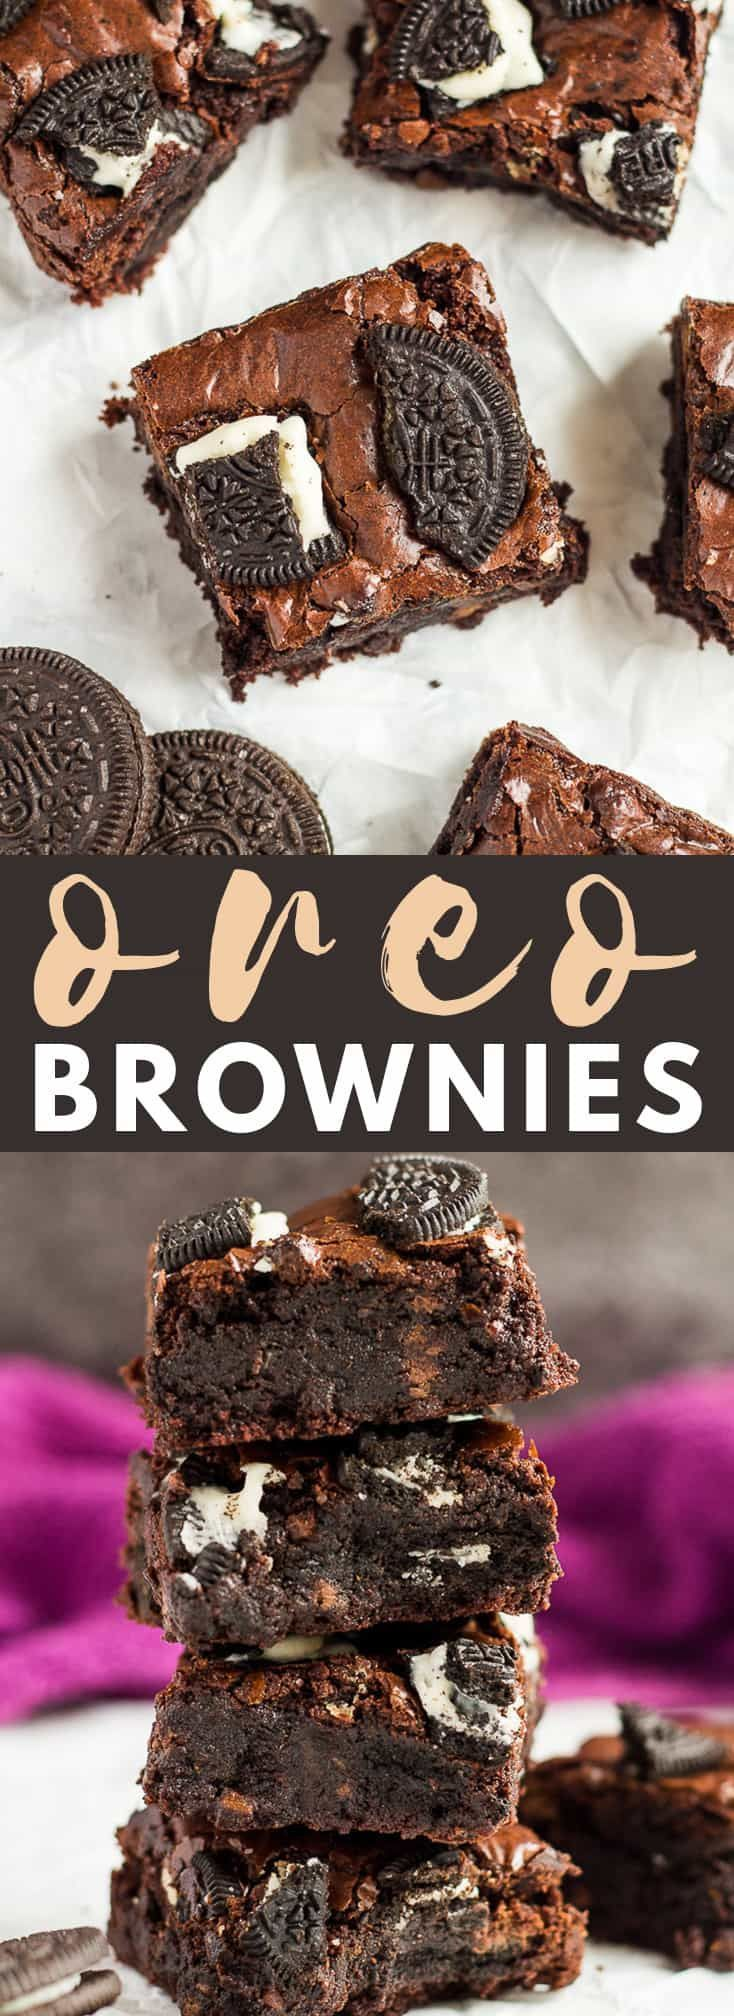 Oreo Brownies - Deliciously thick and fudgy brownies that are chocolatey rich, and loaded with Oreo cookies!